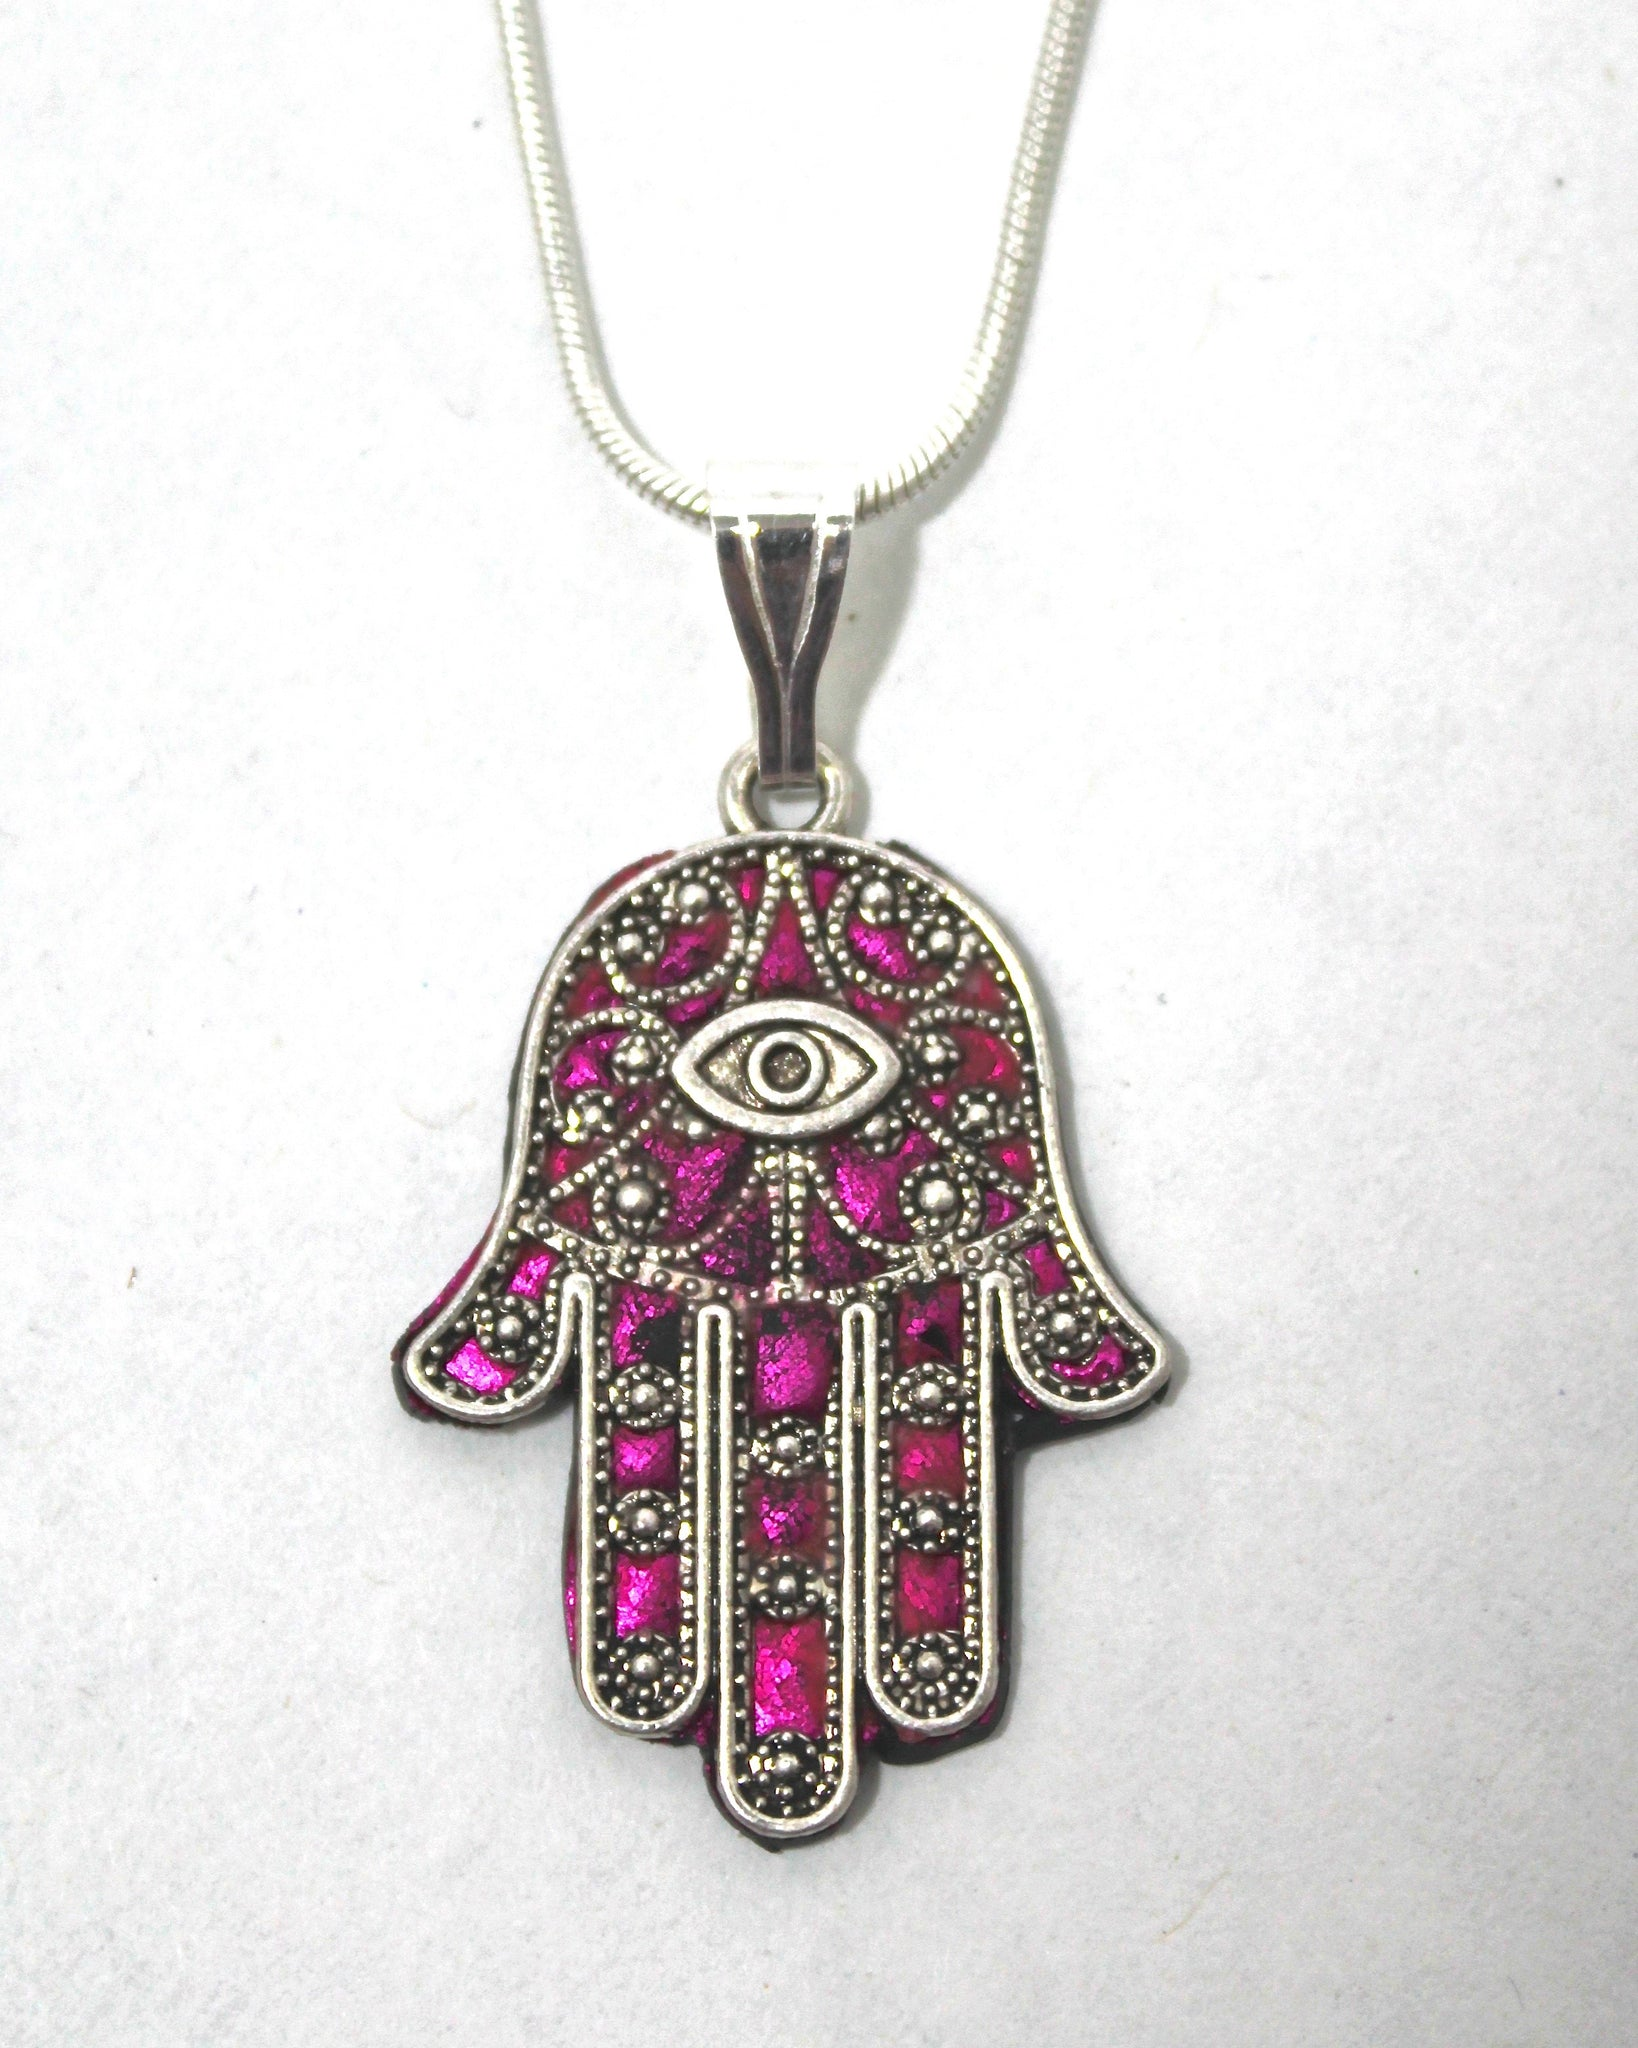 Eye hamsa necklace